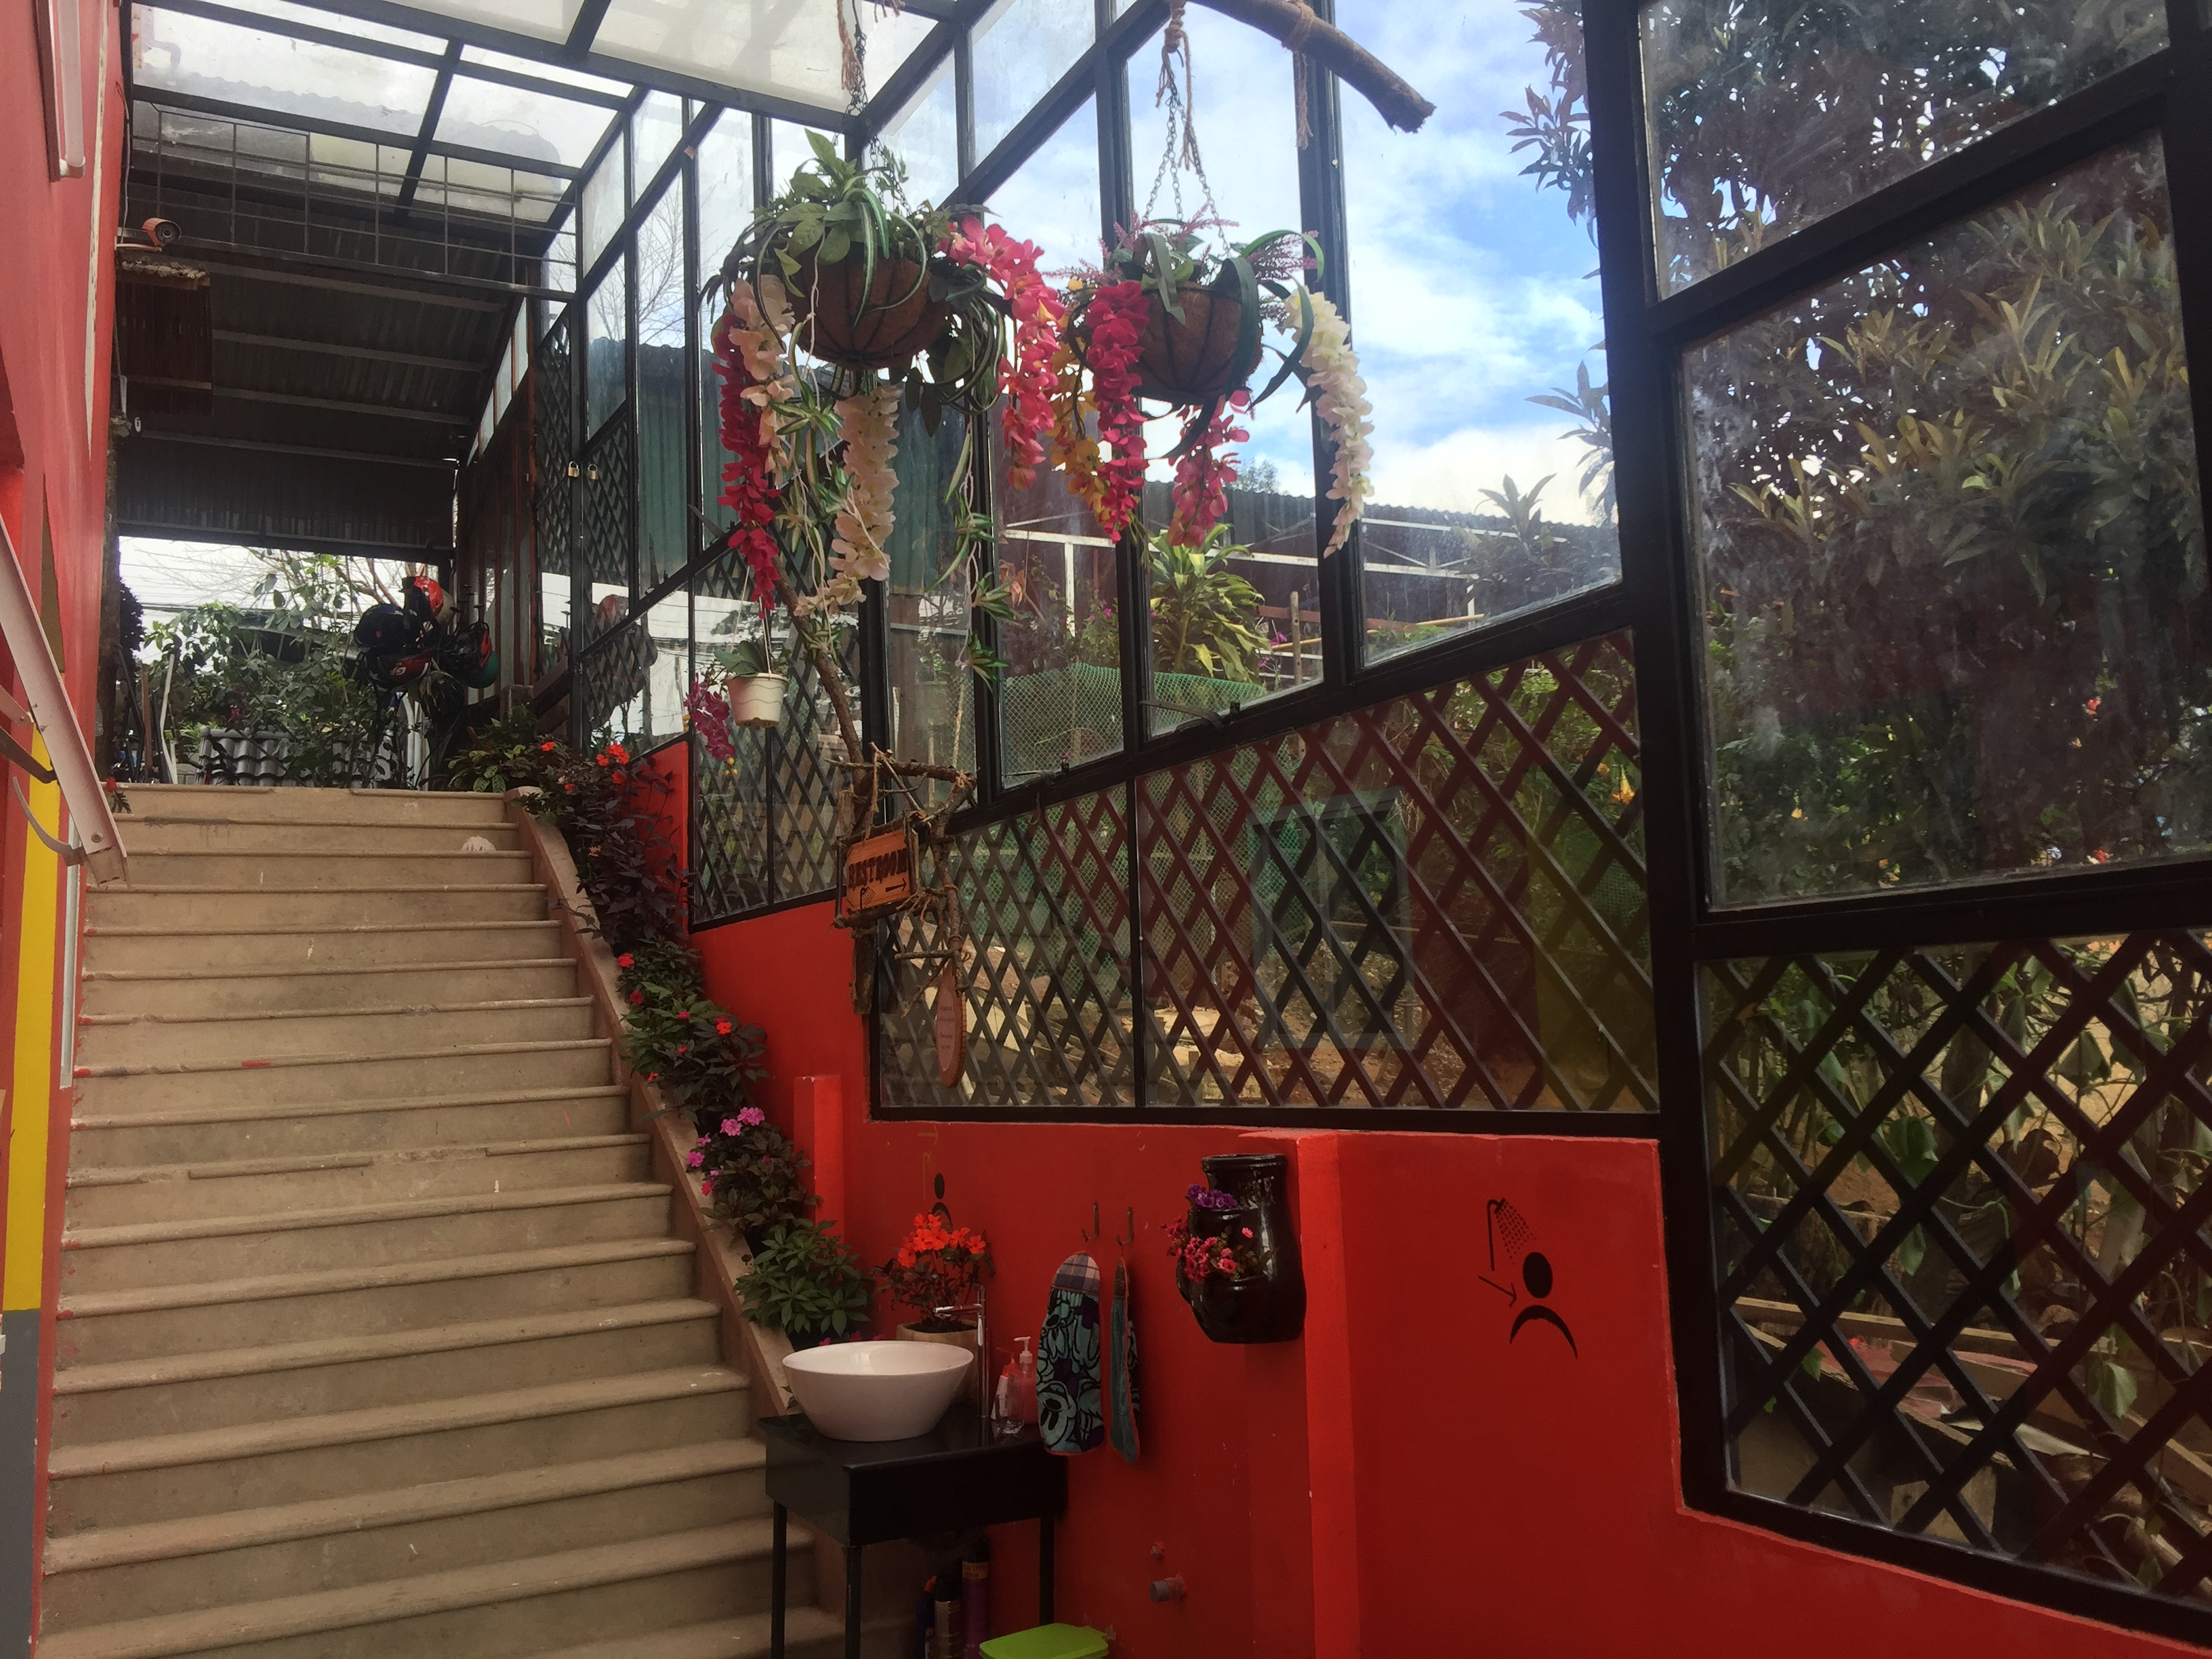 Redhouse Backpackers Hostel